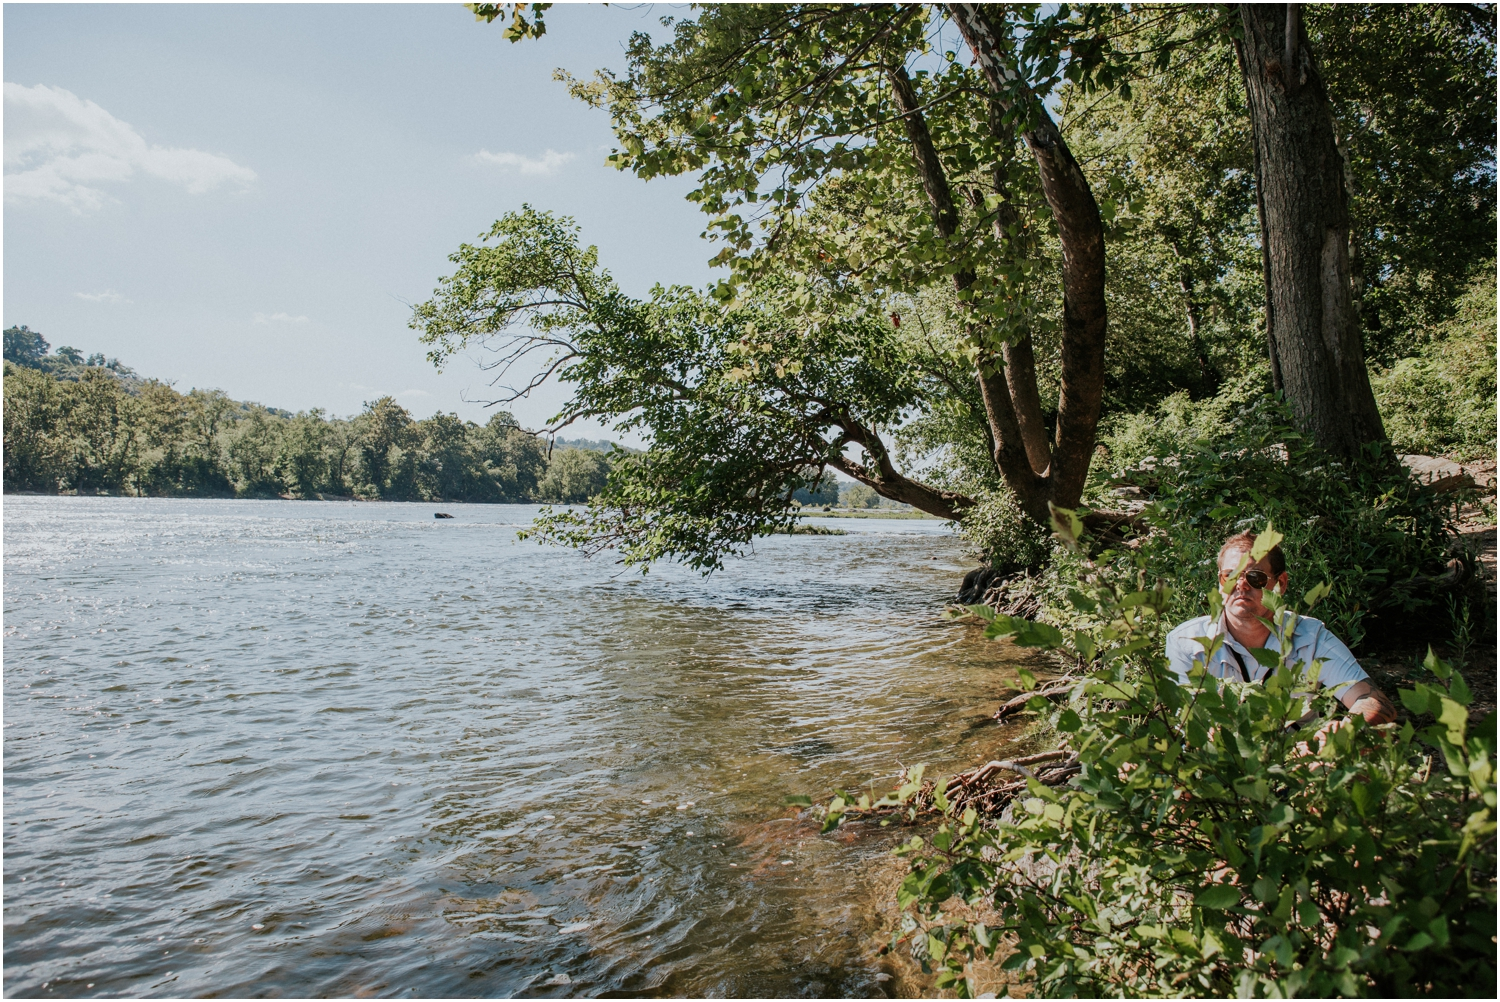 katy-sergent-photography-proposal-appalachian-trail-annapolis-rocks-adventurous-wedding-couples-intimate-elopement-hiking-backpacking-camping-photographer-johnson-city-tn-northeast-tennessee_0029.jpg